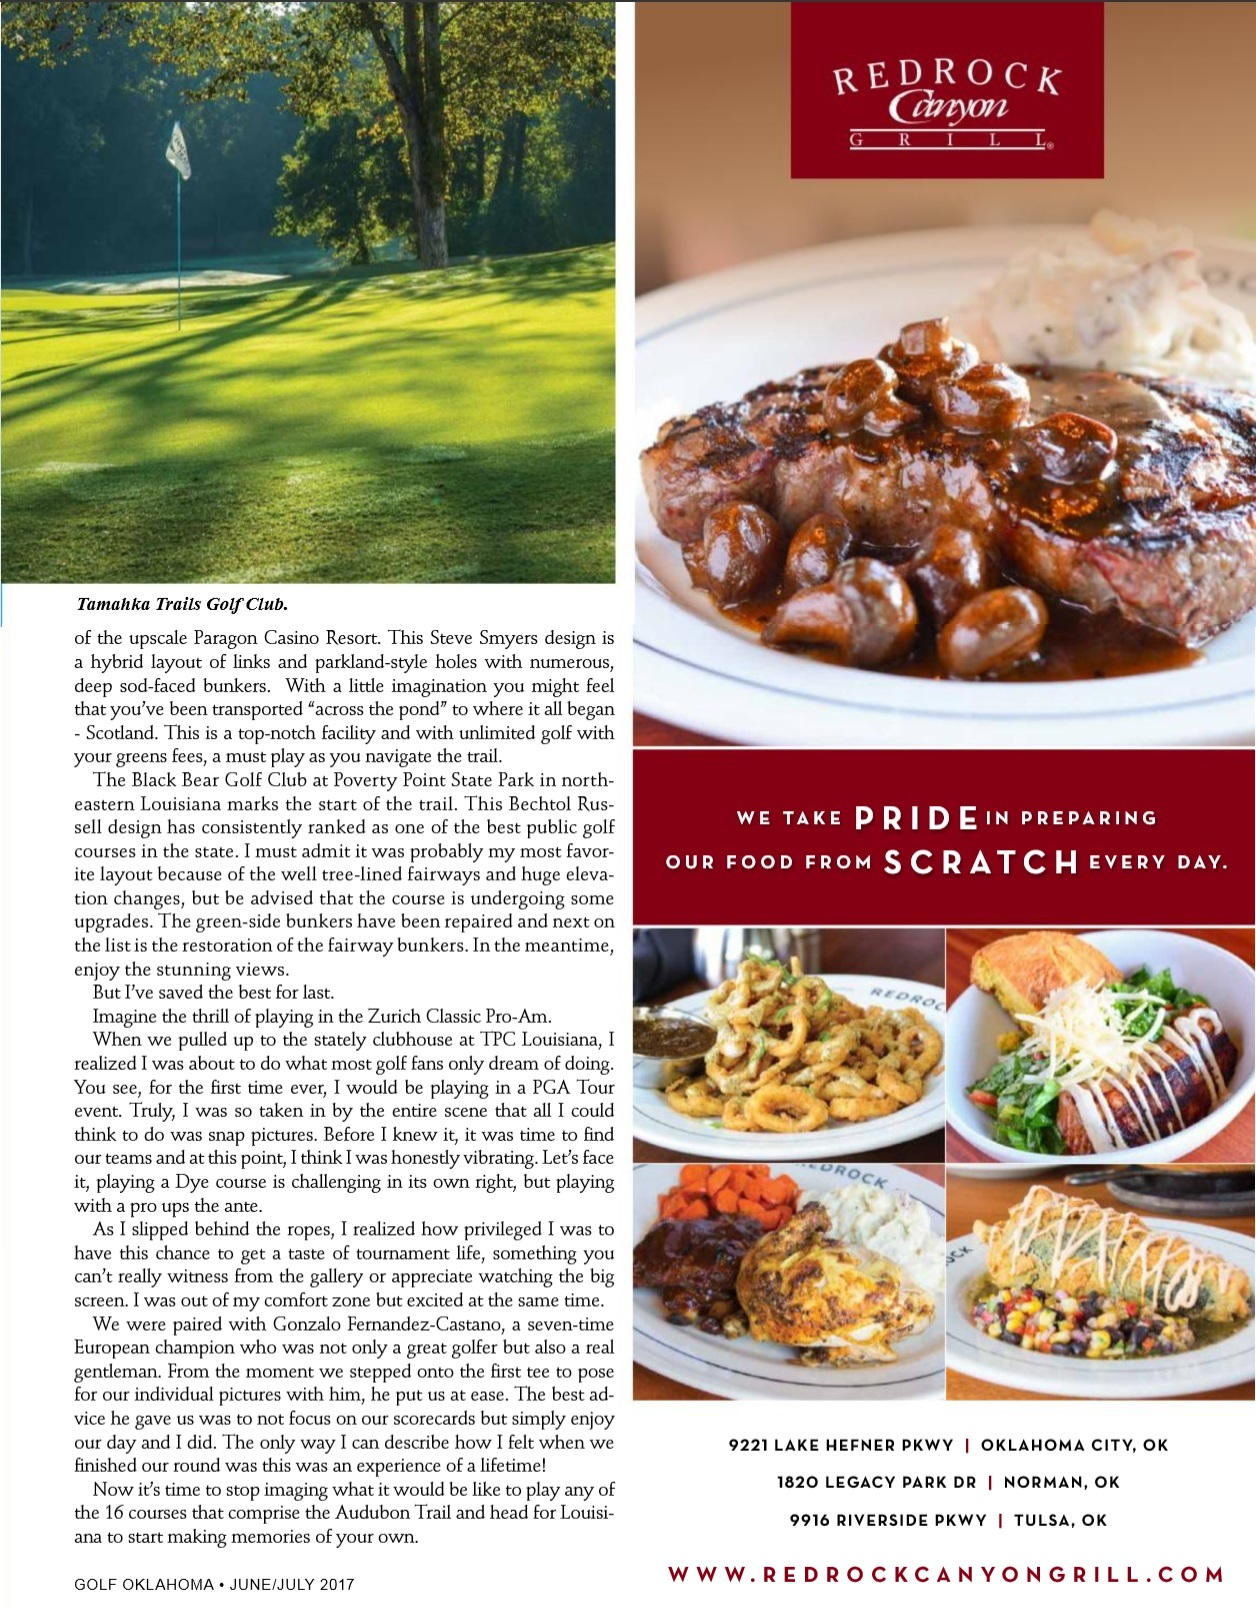 Audubon Trail for Golf Oklahoma Page 55 June/July 2017 Issue